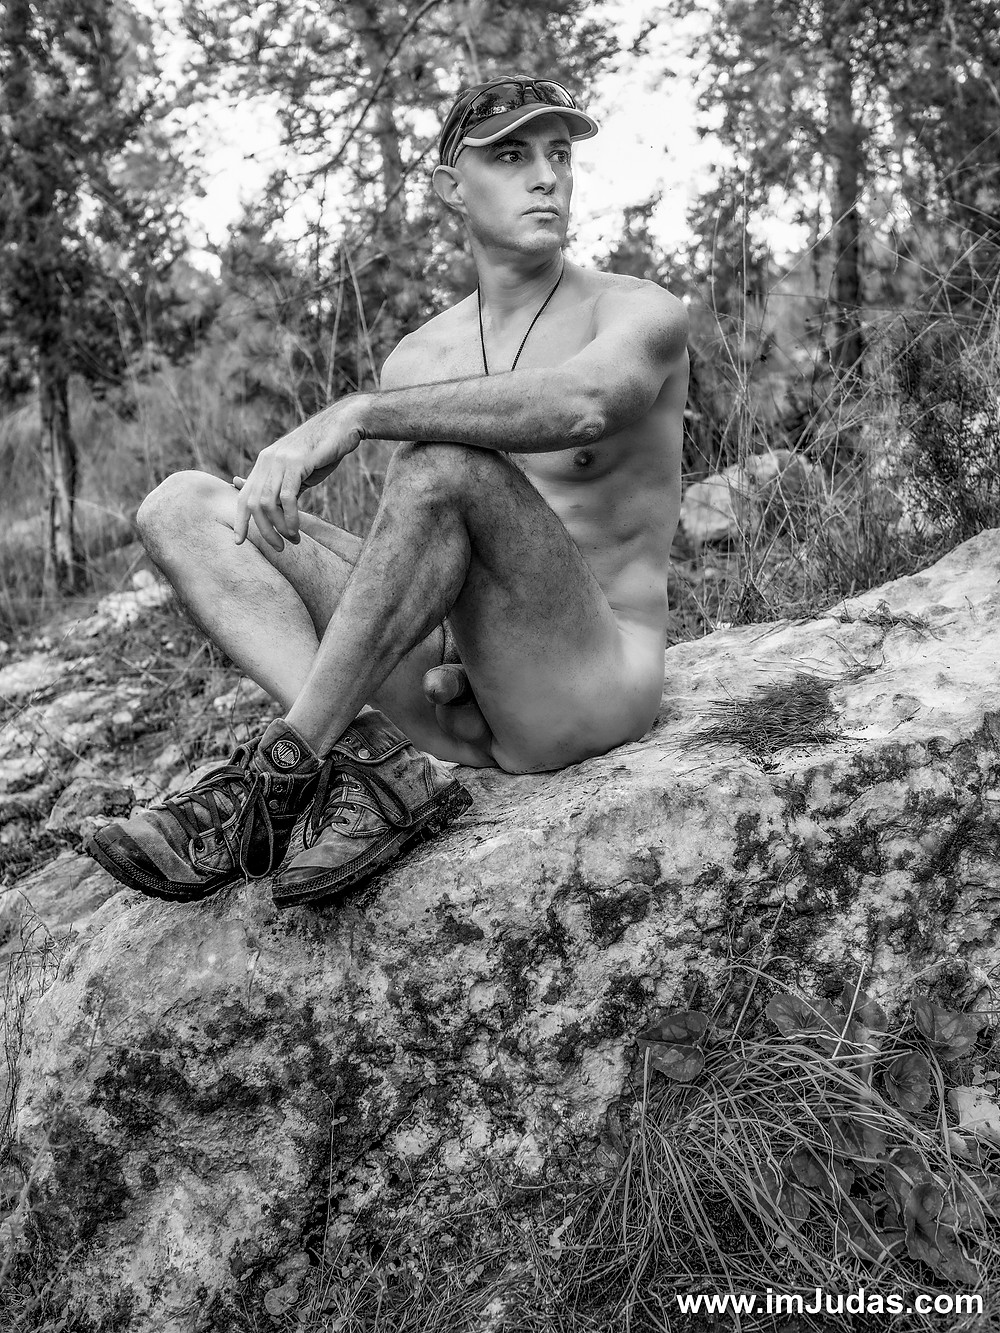 Sitting on a rock naked, my cock visible